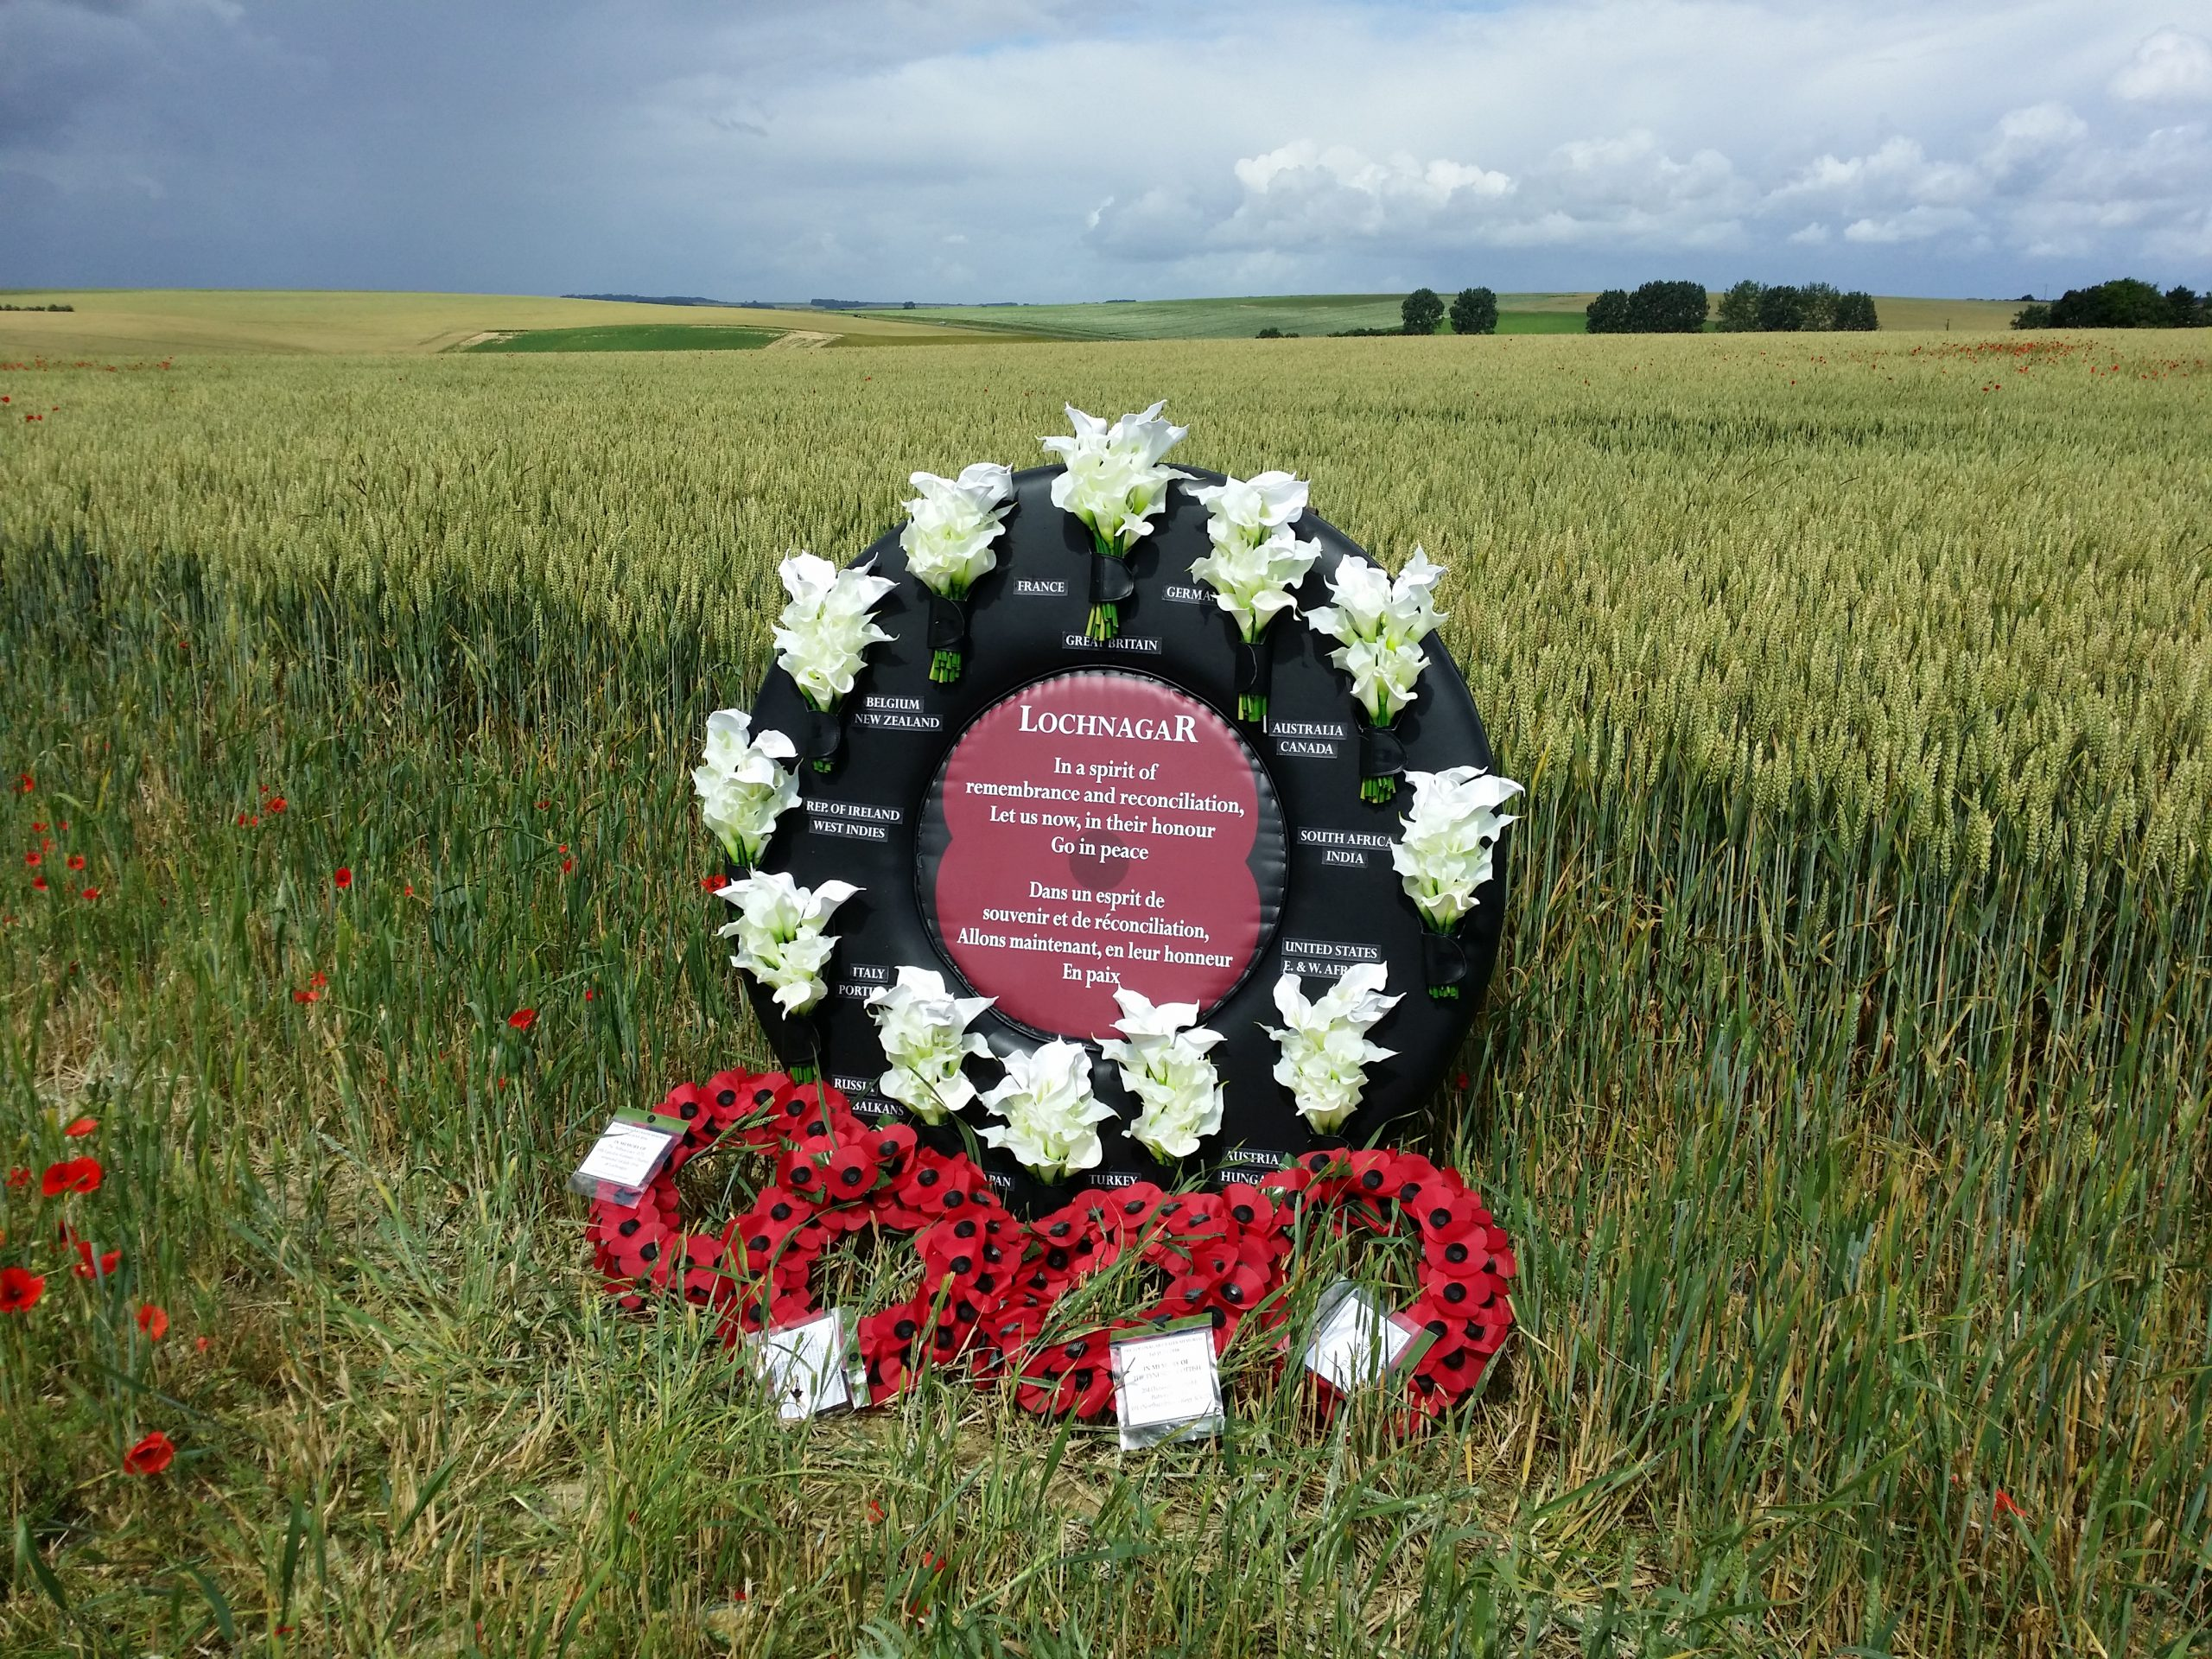 Lochnagar crater 1 july 2016